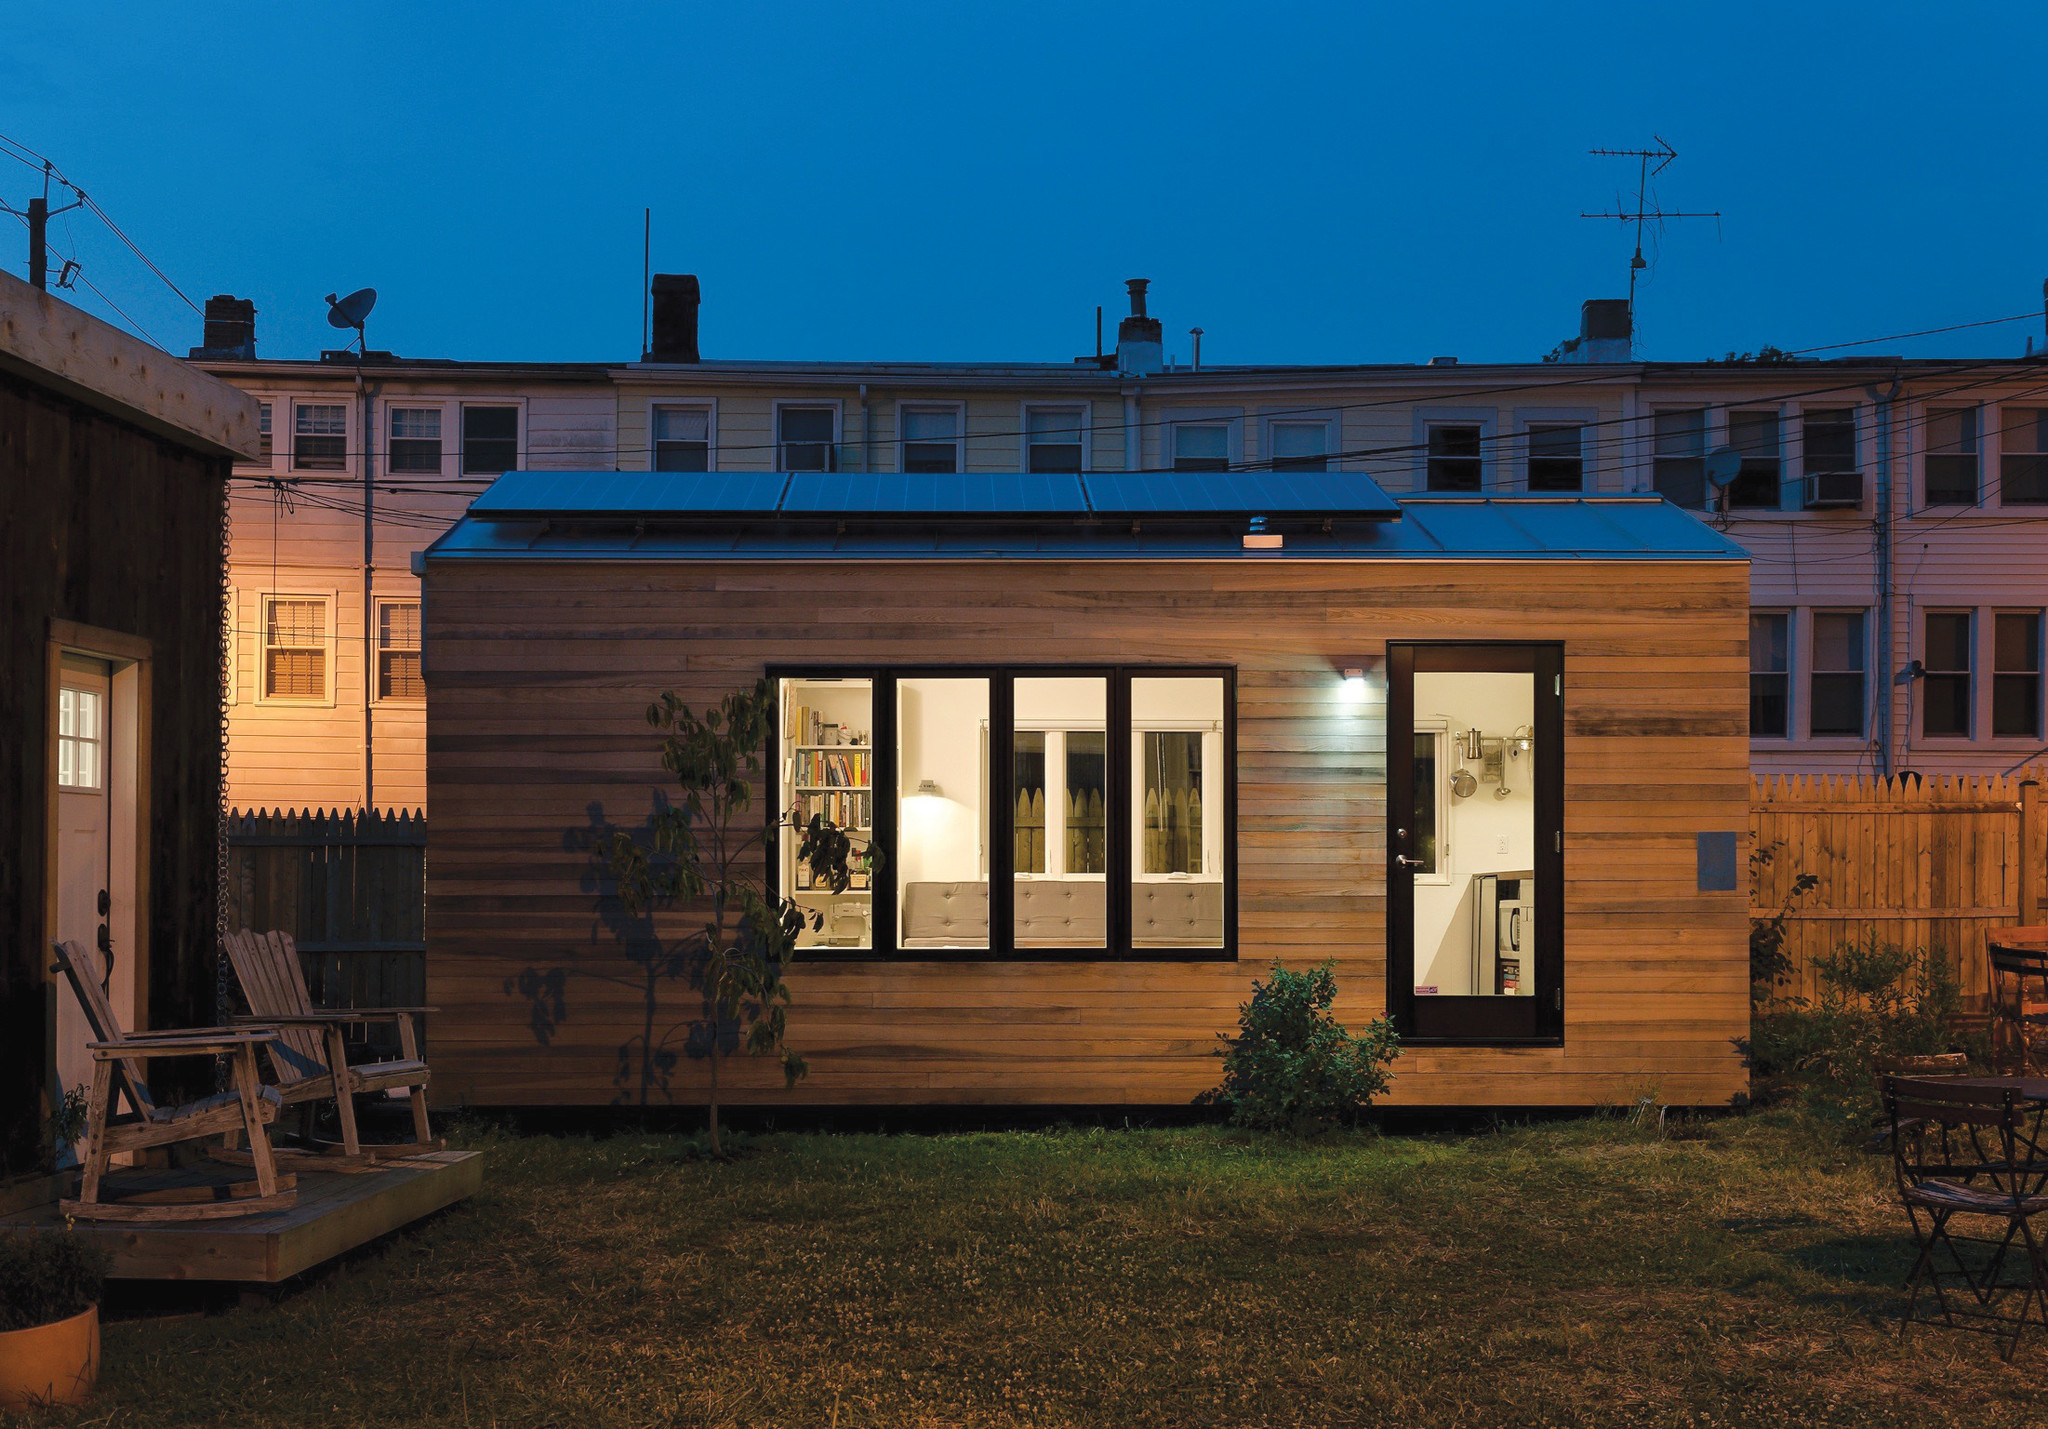 Mimi Zeiger on design density and her new book Tiny Houses in